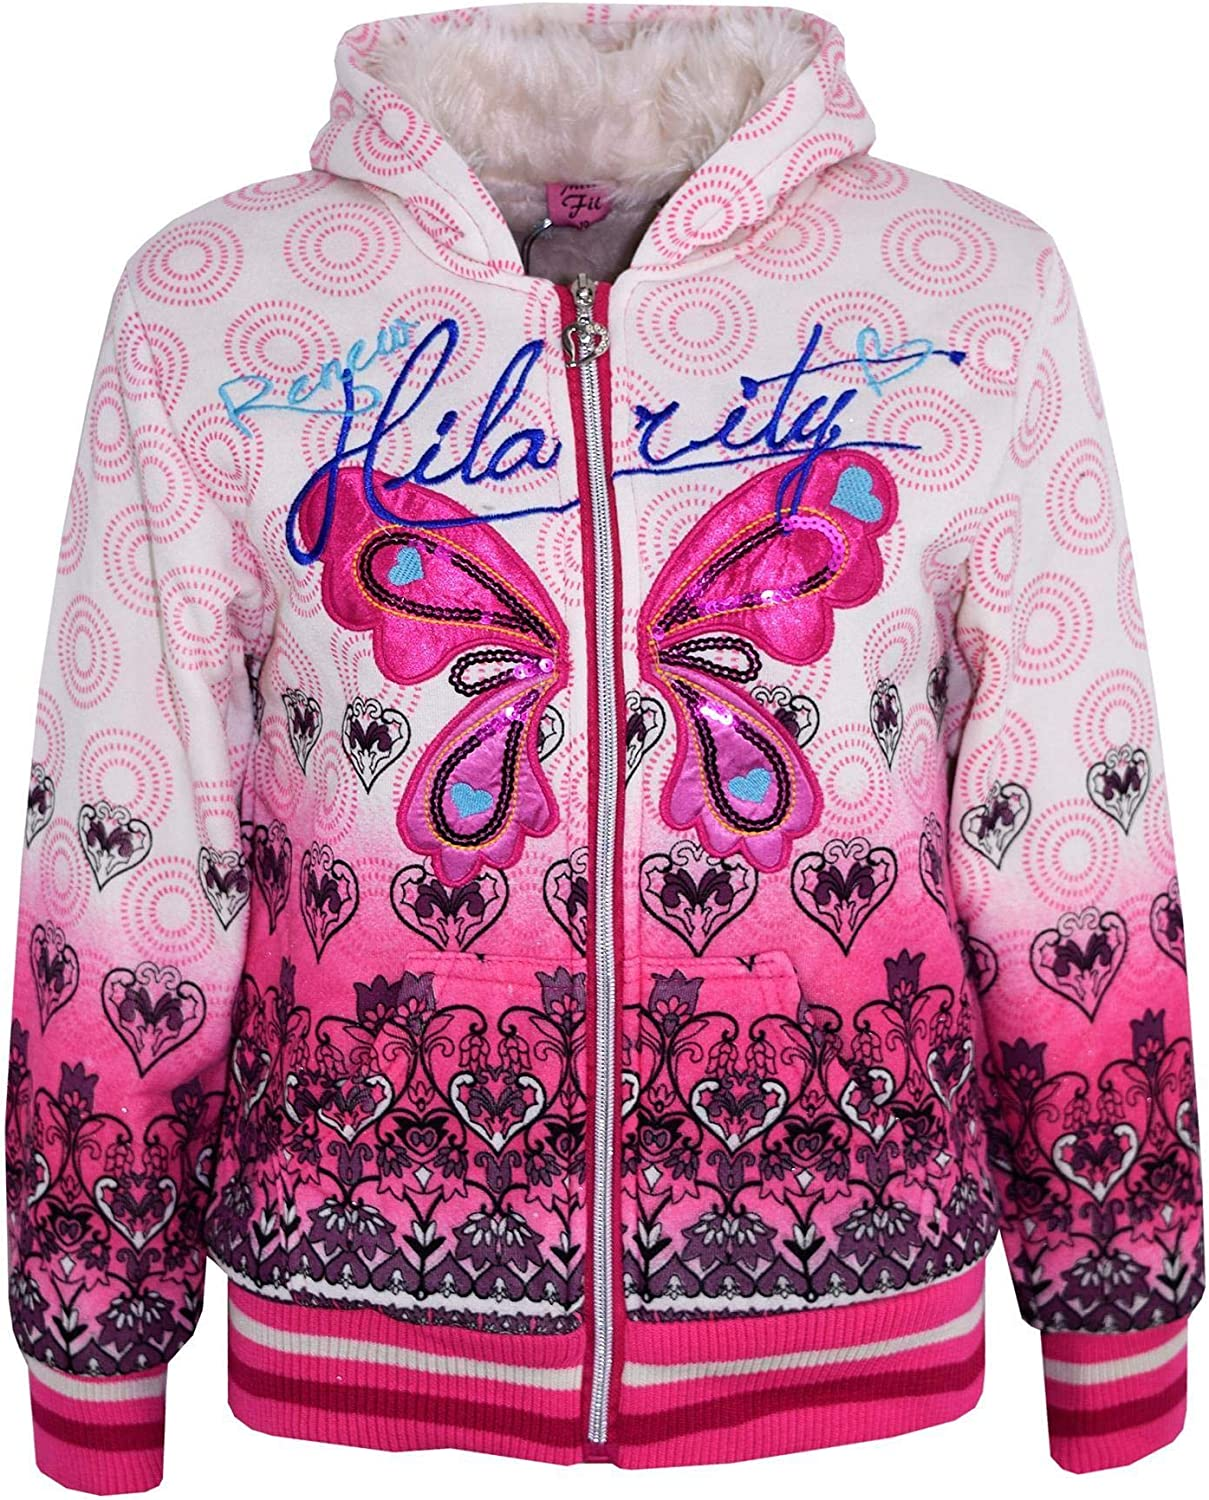 Kids Girls Hoodie Designer Party Fashion Stylish Hooded Jumper Coats 7-13 Years